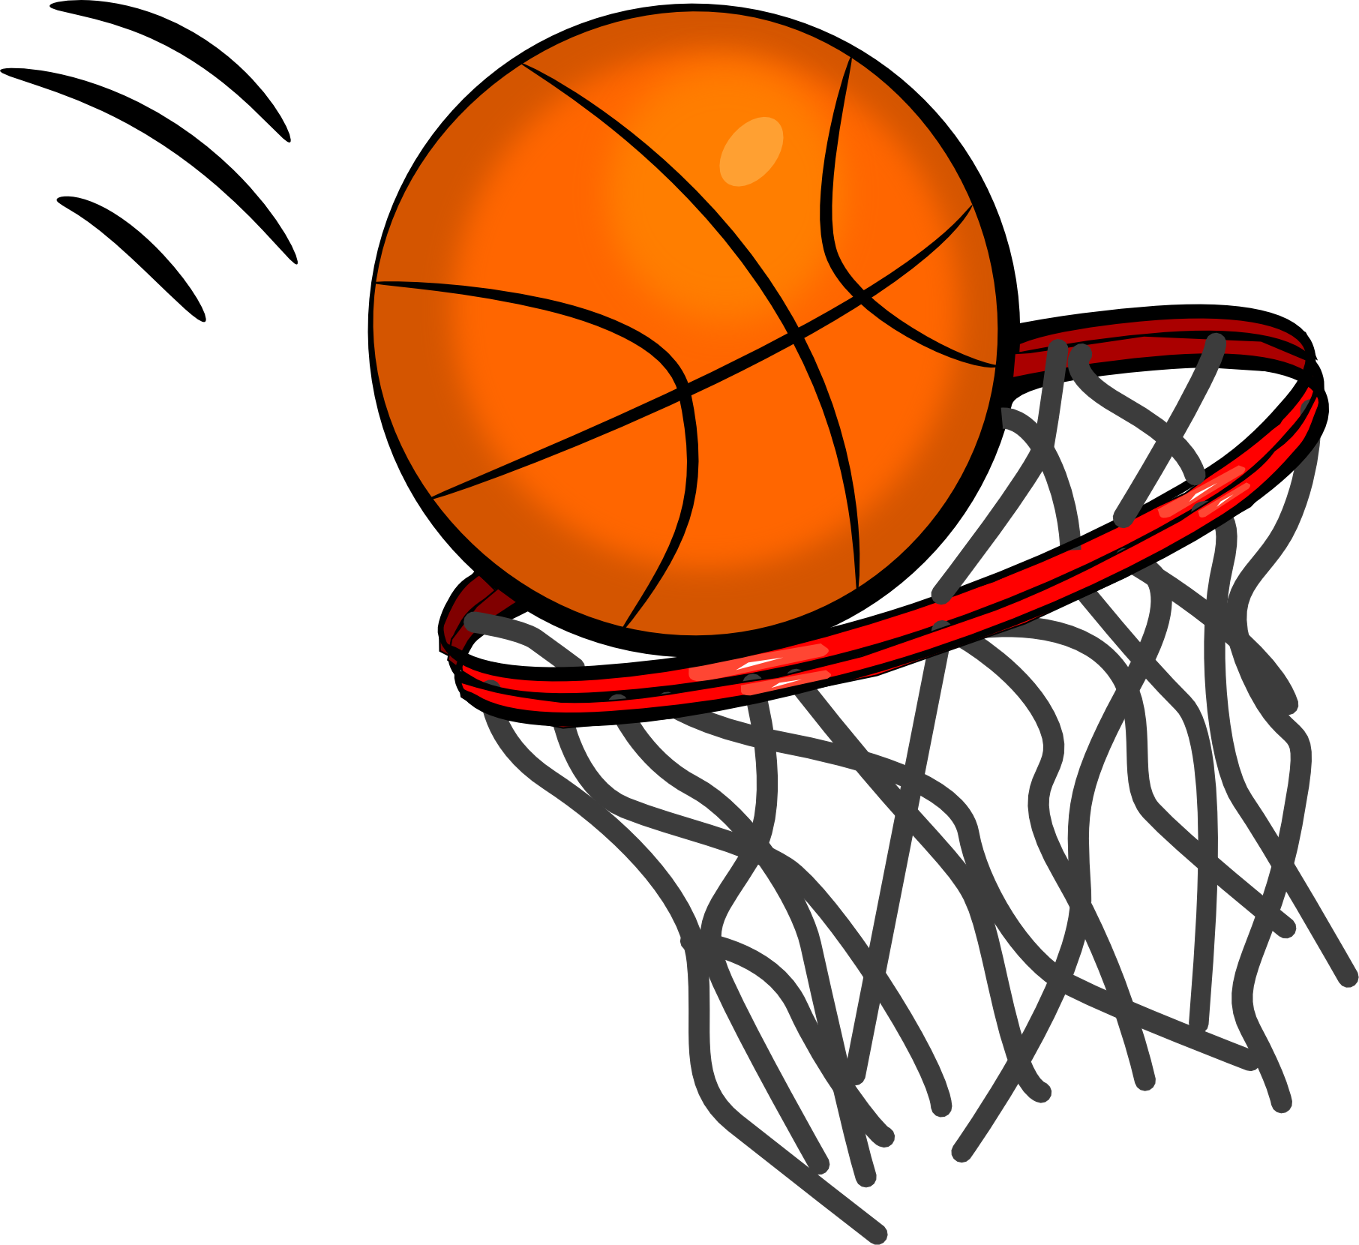 Hoop clipart. Basketball free